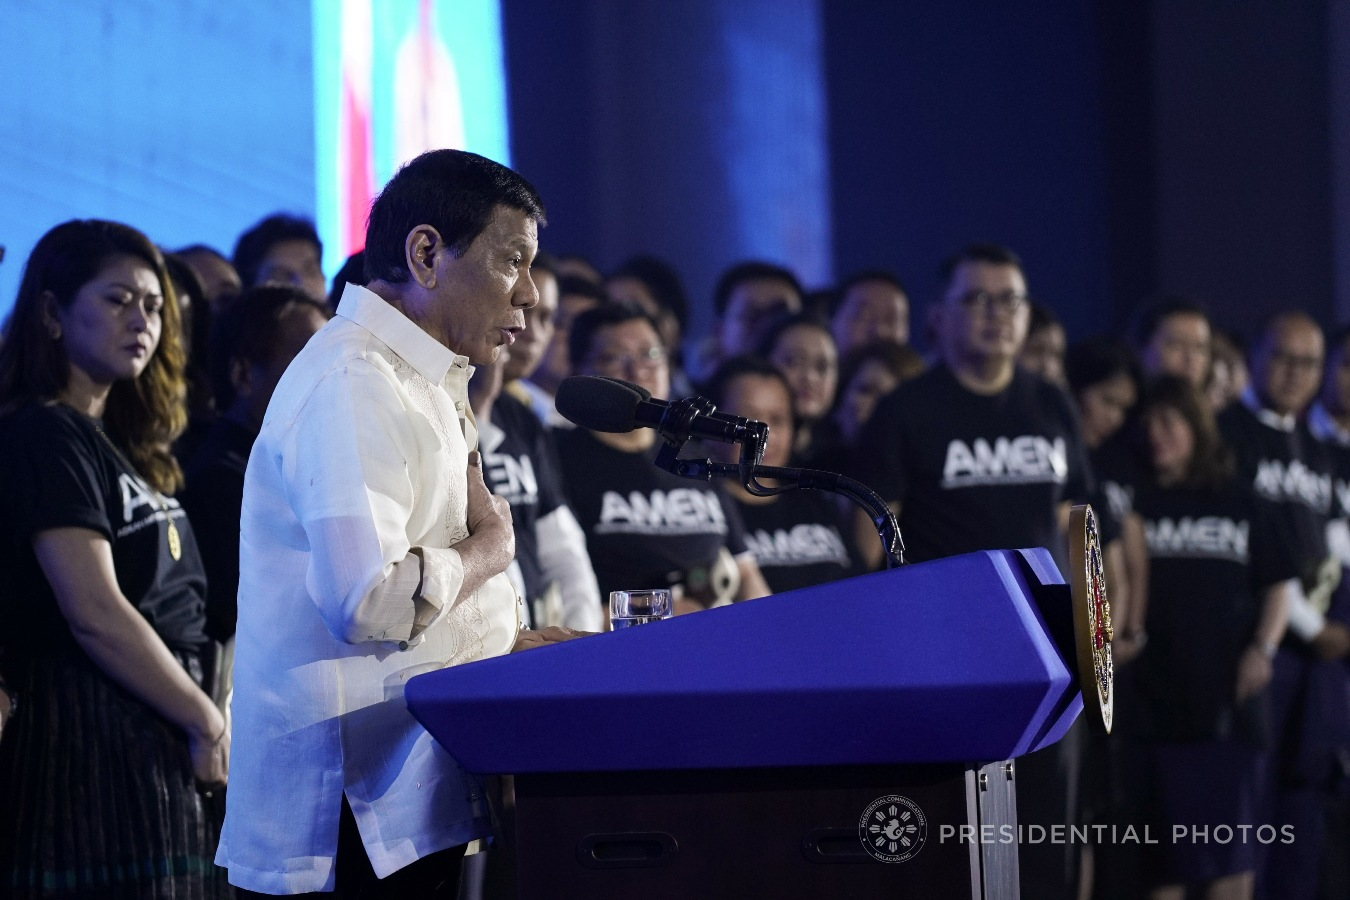 President Rodrigo Roa Duterte, in his speech during the launching of the ASEAN Mentorship for Entrepreneurs Network (AMEN) and opening of ASEAN Business and Investment Summit (ABIS) at the Solaire Grand Ballroom in Pasay City on November 12, 2017, vows to pour in support for the micro, small and medium enterprises (MSMEs) citing that they are among the biggest contributors in achieving inclusive growth in the country. KING RODRIGUEZ/PRESIDENTIAL PHOTO